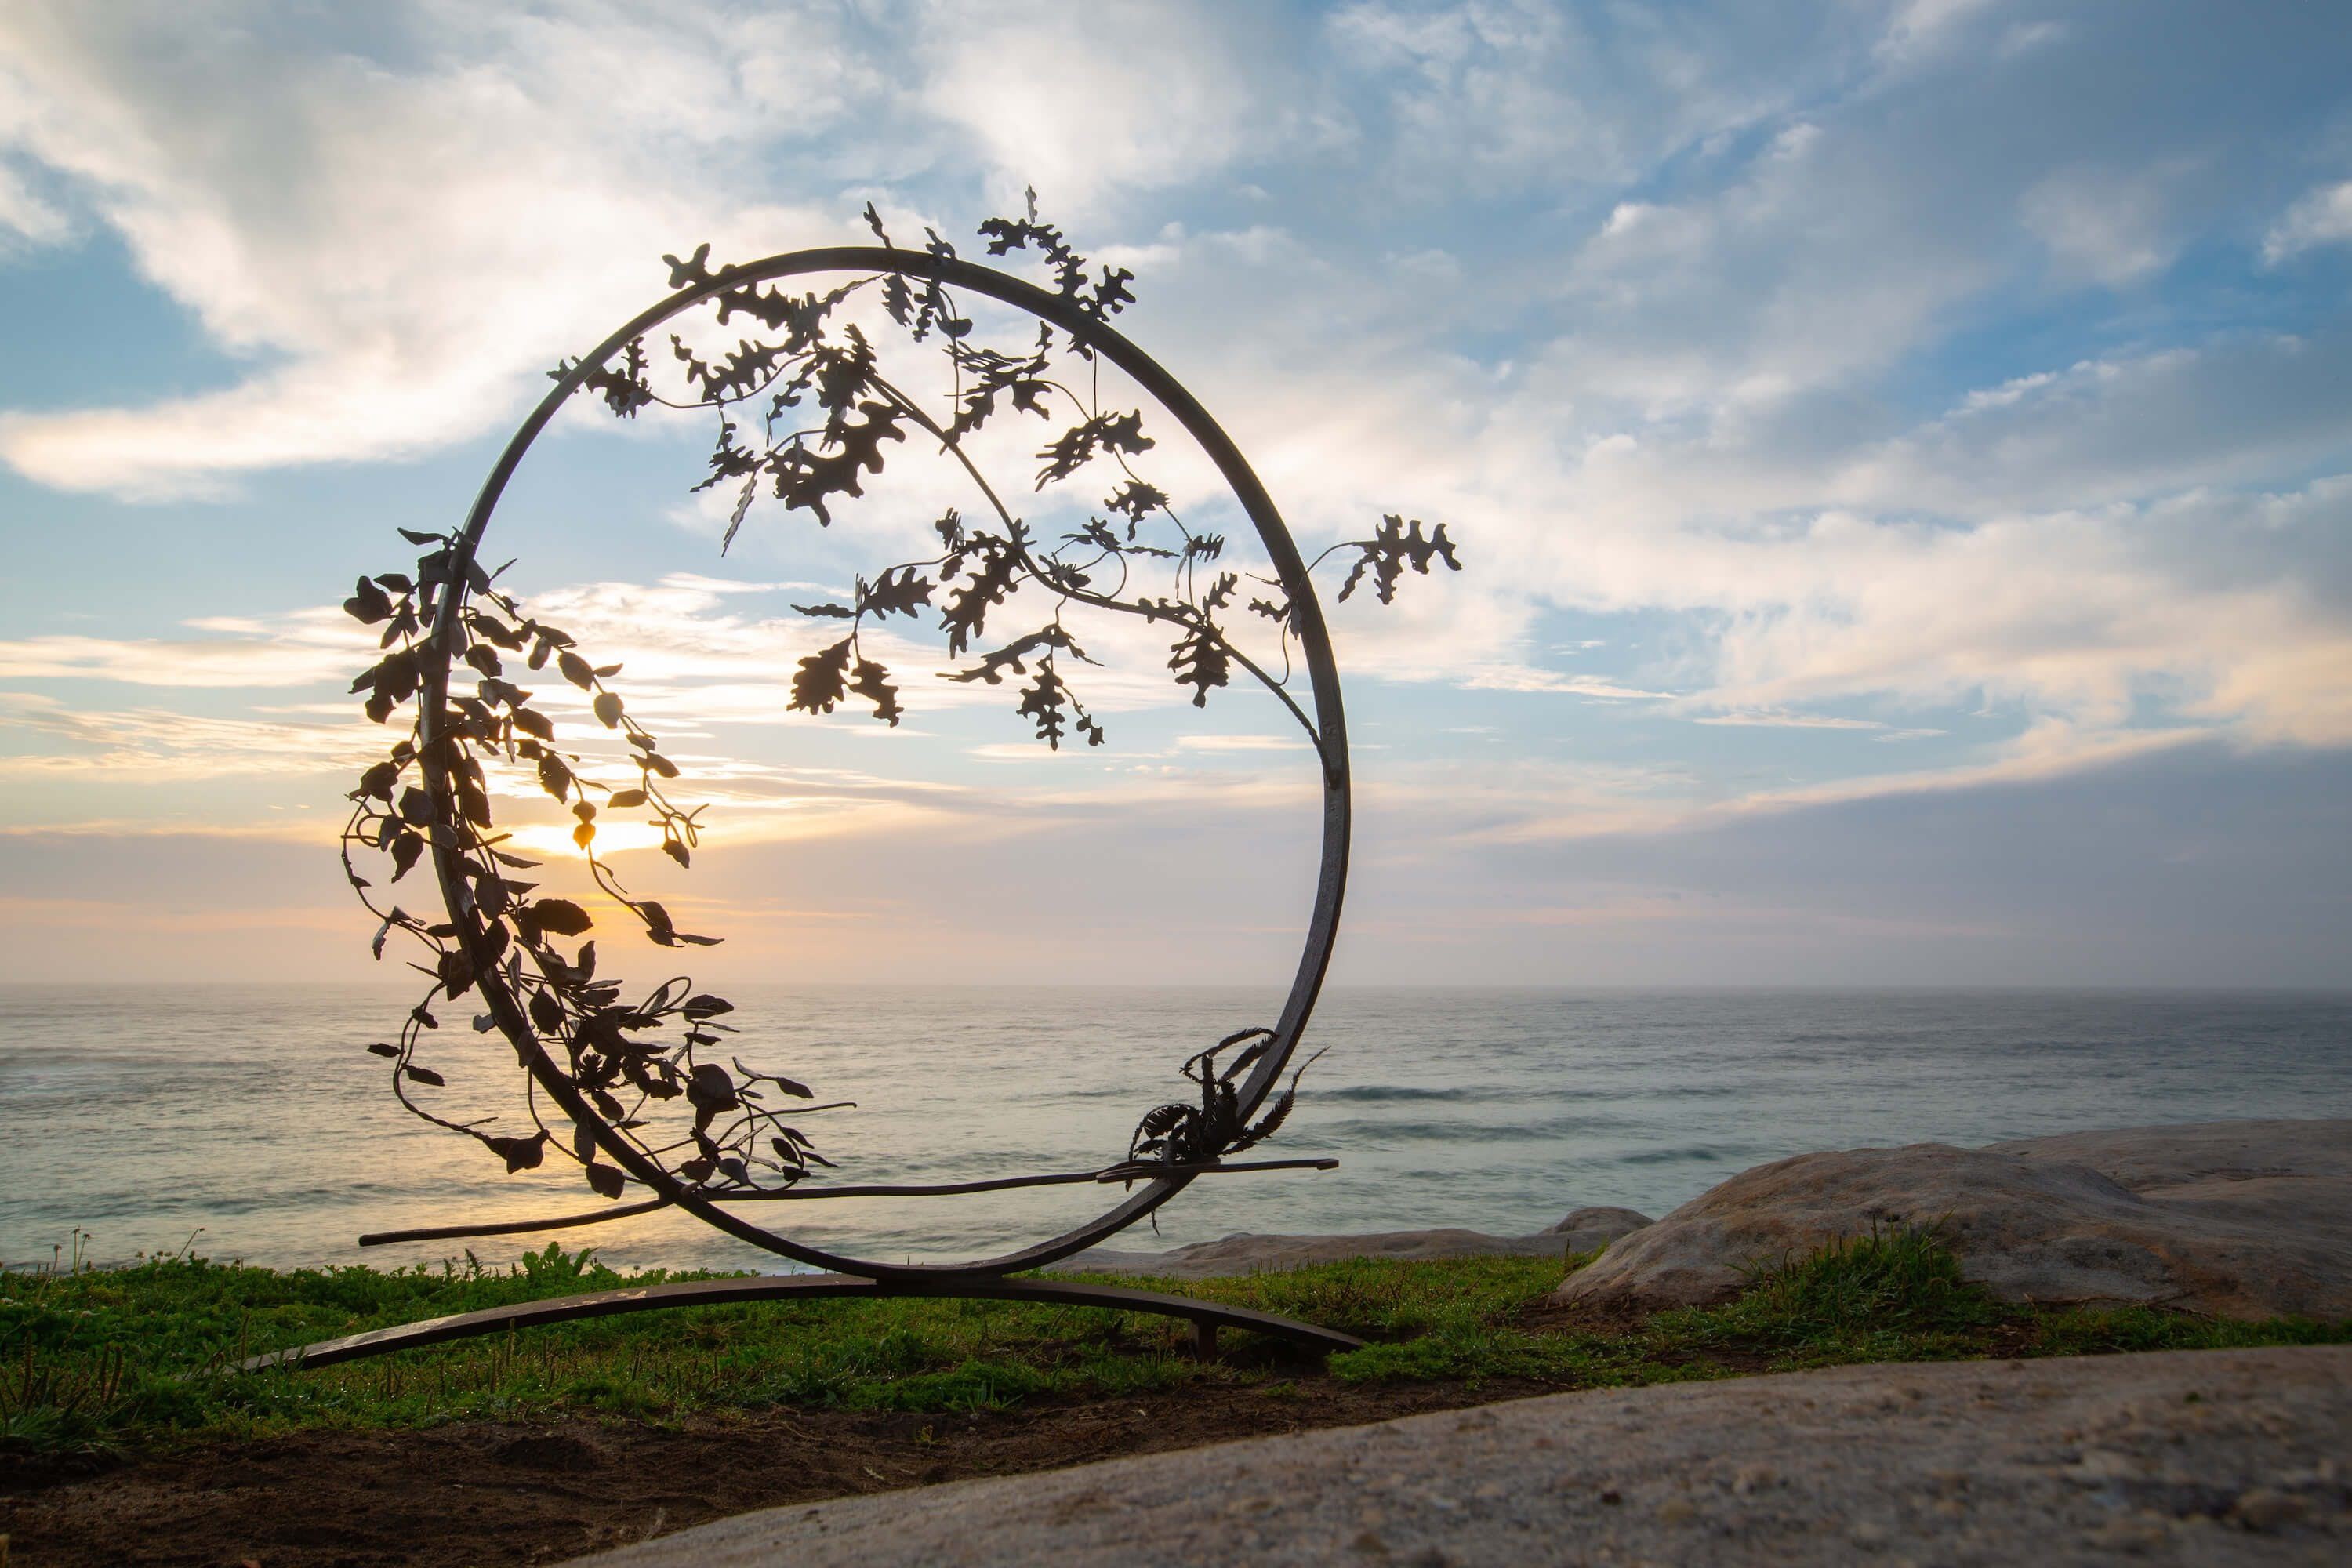 Stephen Hogan's sculpture sits next to the sea in Australia. Image by G Carr